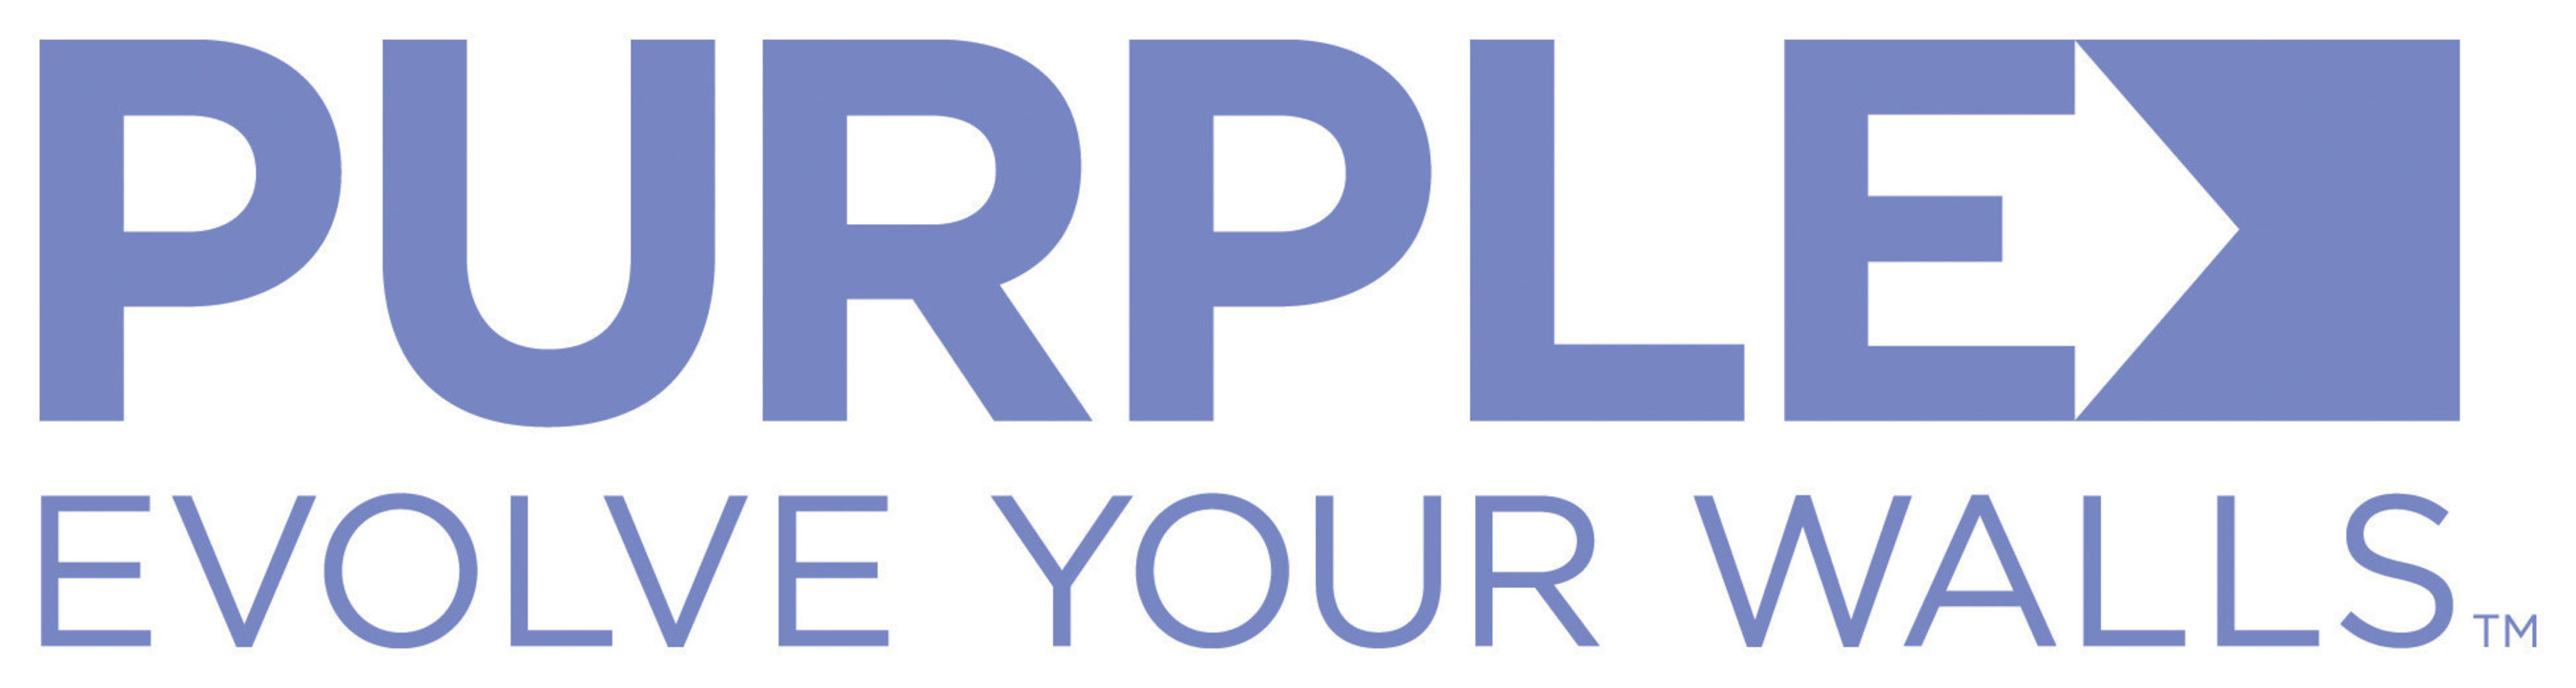 National Gypsum's PURPLE-TO-PERFECT contest offers homeowners chance to win media room, bathroom or garage renovation by TV host and designer Anitra Mecadon.